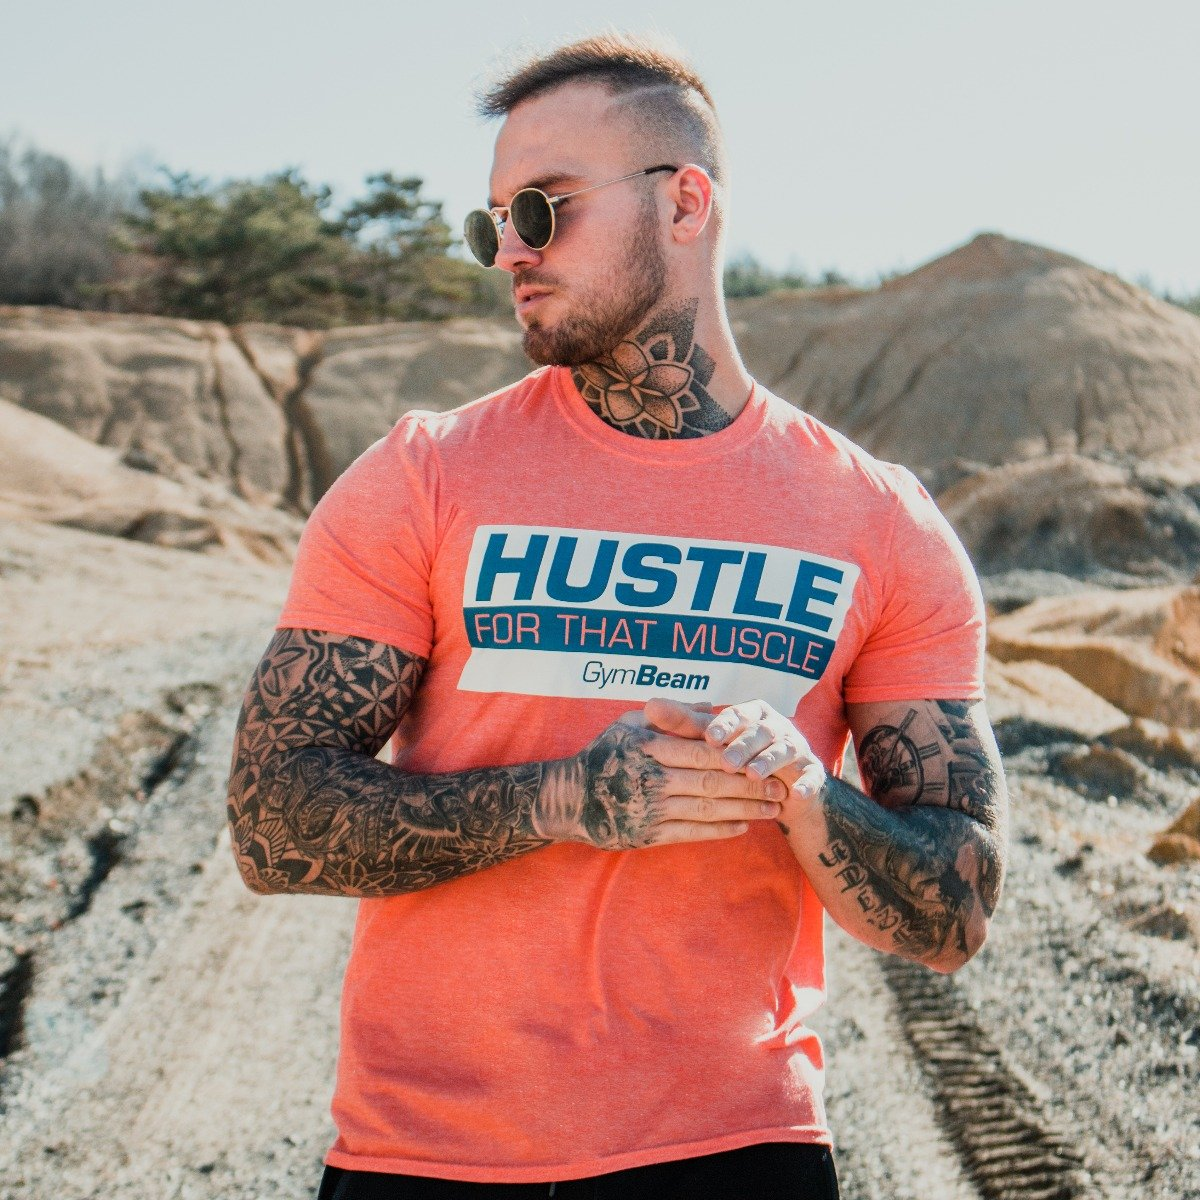 Tričko Hustle For That Muscle Heather Orange - GymBeam - S